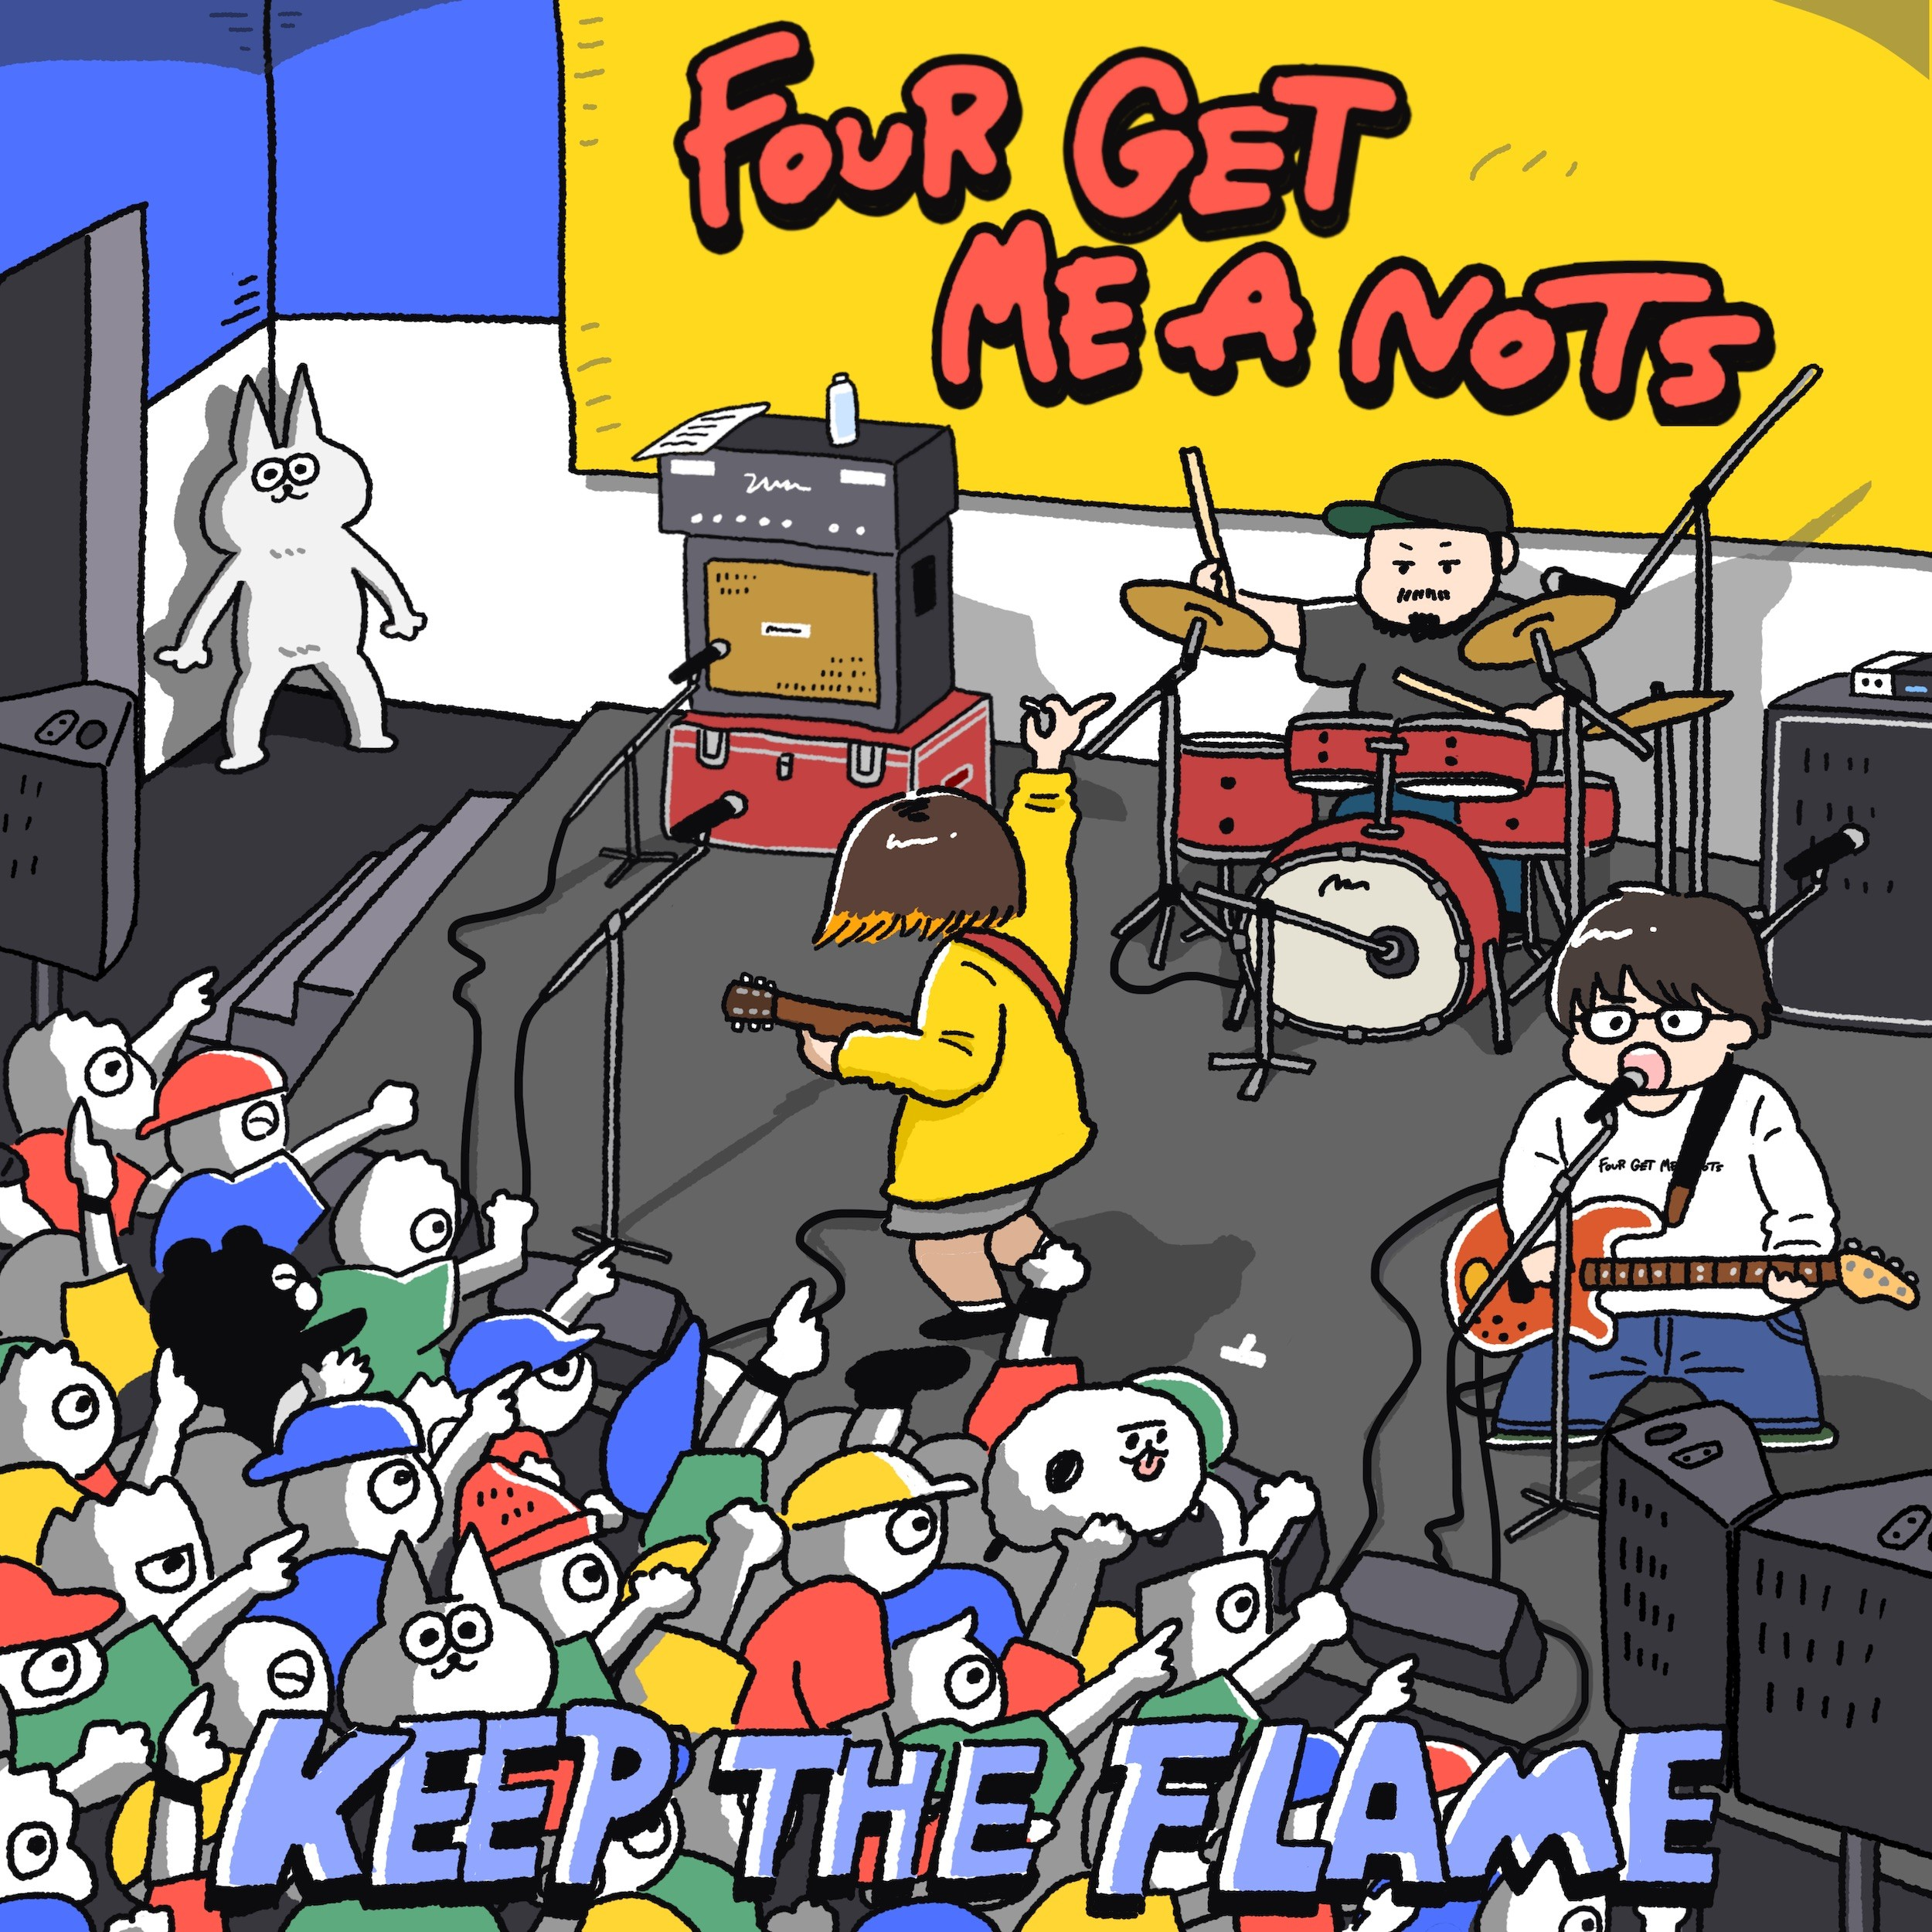 Image of KEEP THE FLAME / FOUR GET ME A NOTS